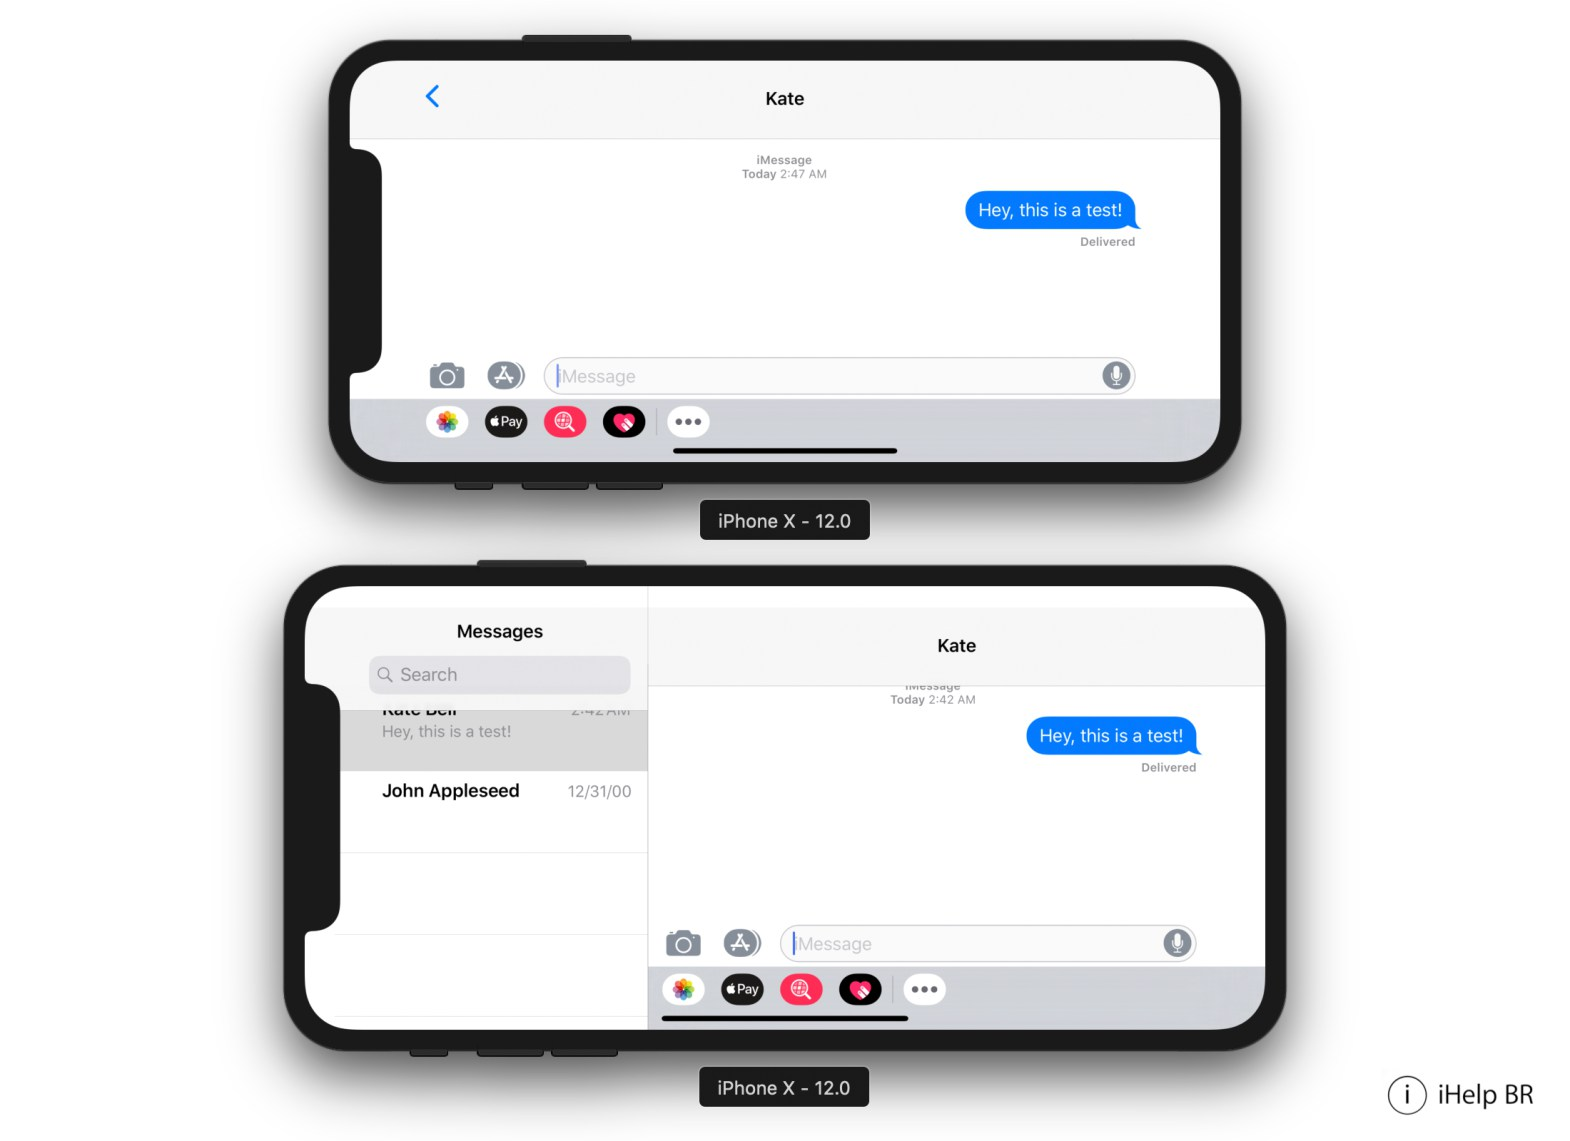 Mensajes iPhone X Vs iPhone X plus horizontal